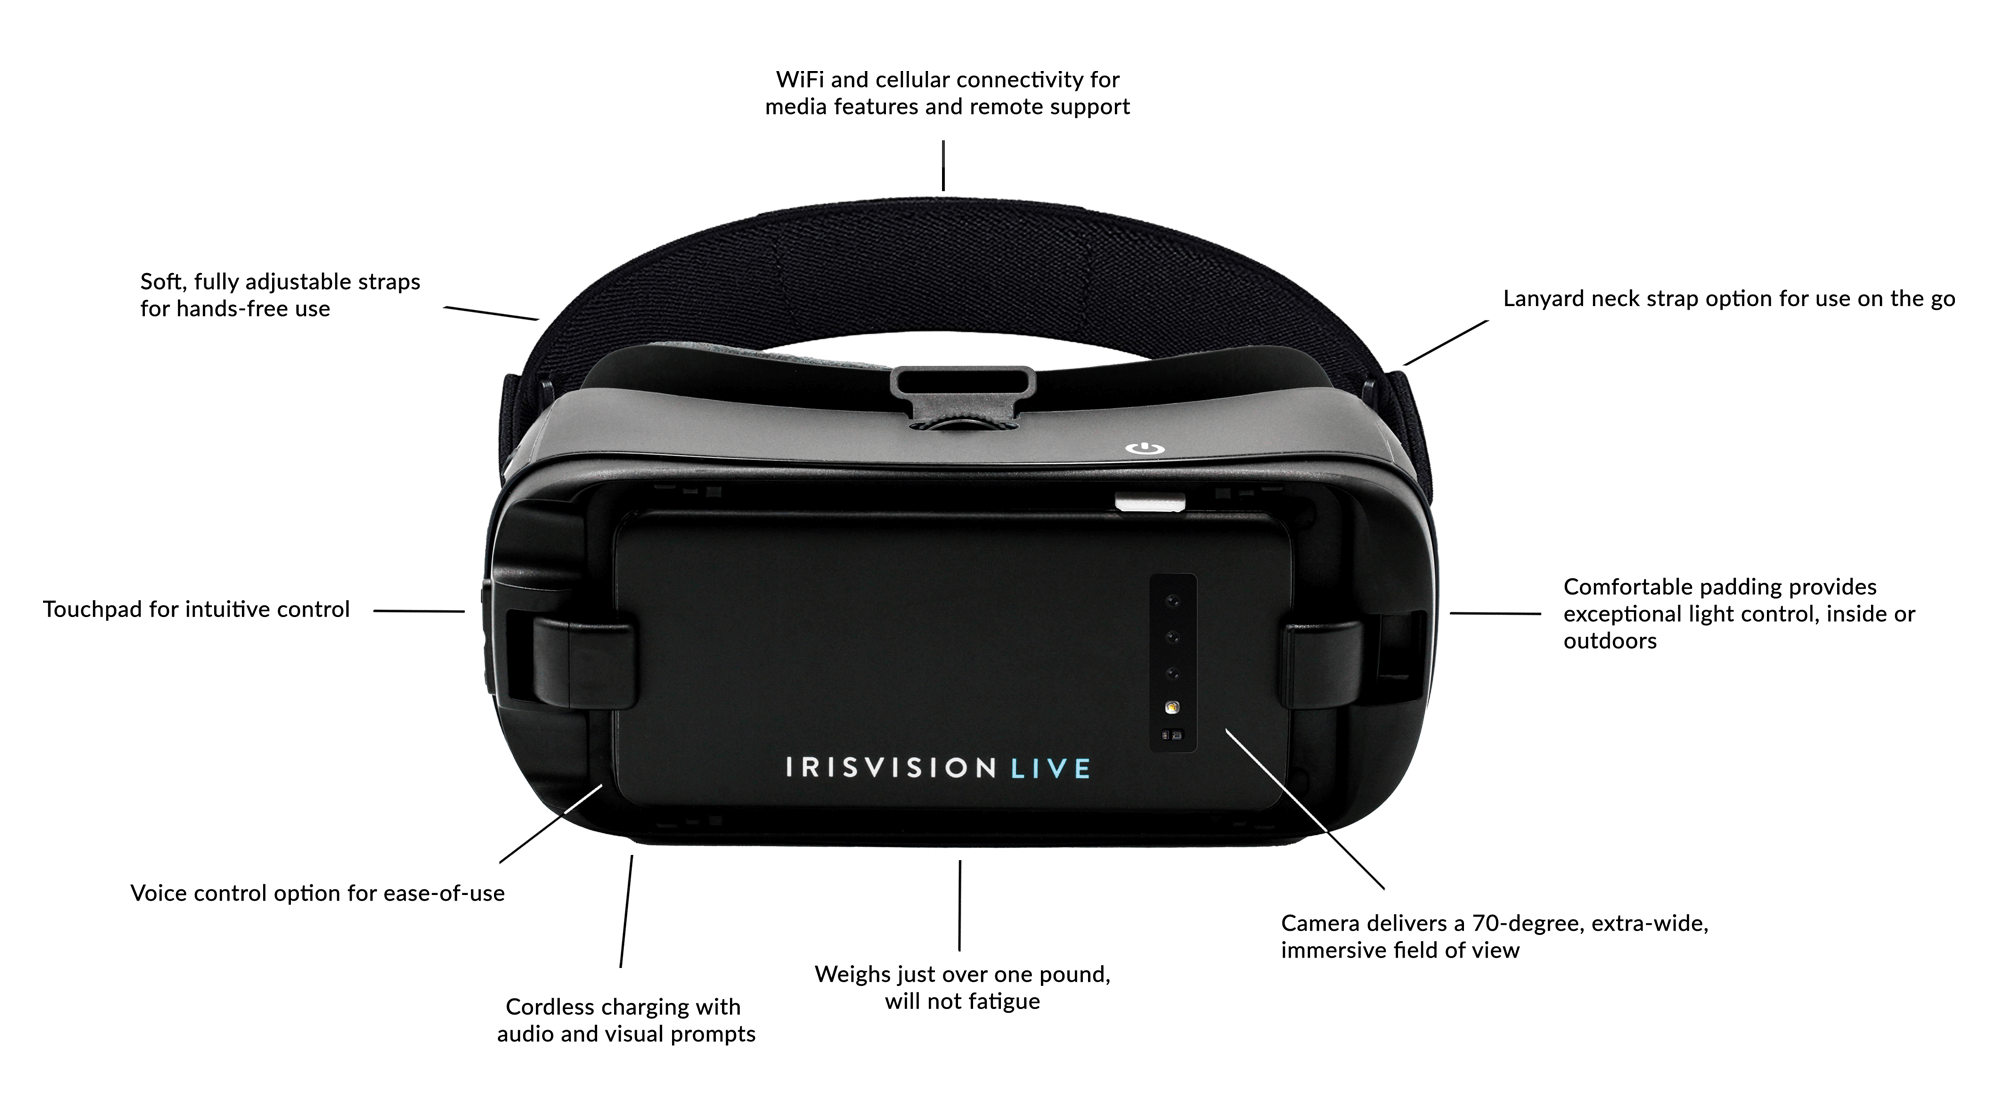 Device Features